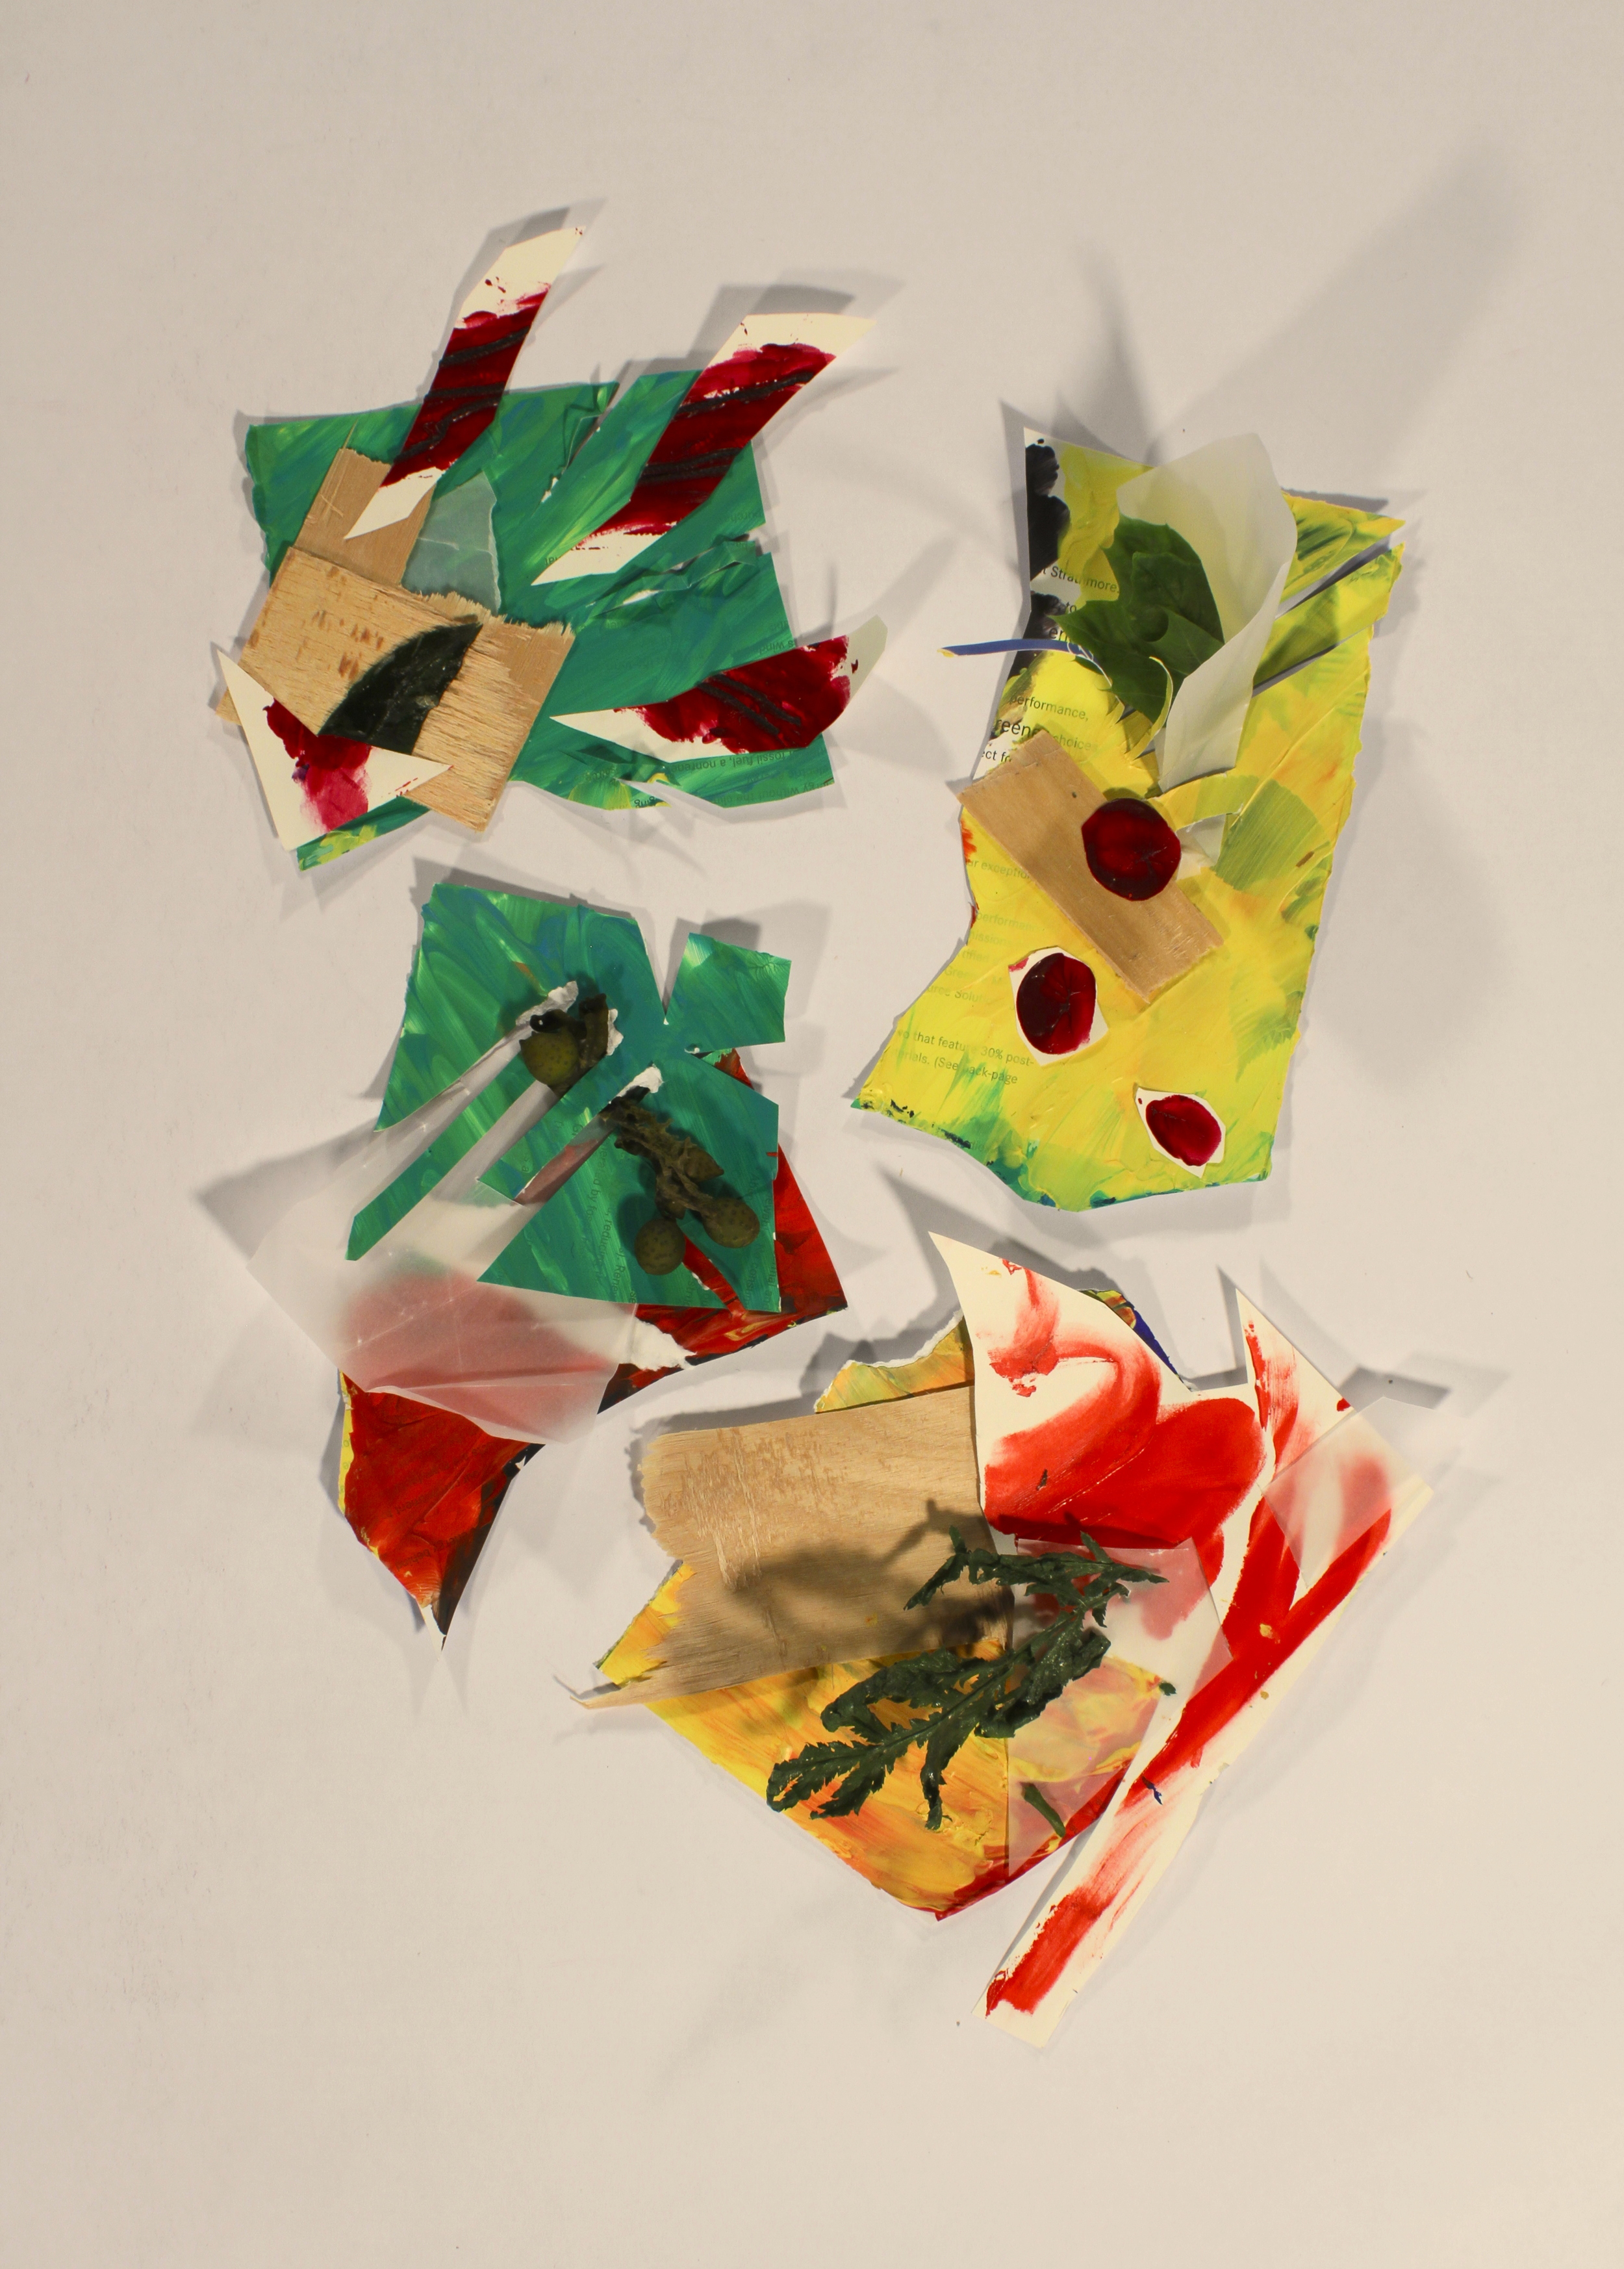 Whirlwinds- Shattered  2014, paper, vellum, wood, acrylic, twine, assorted plants, 14in x 6.5in